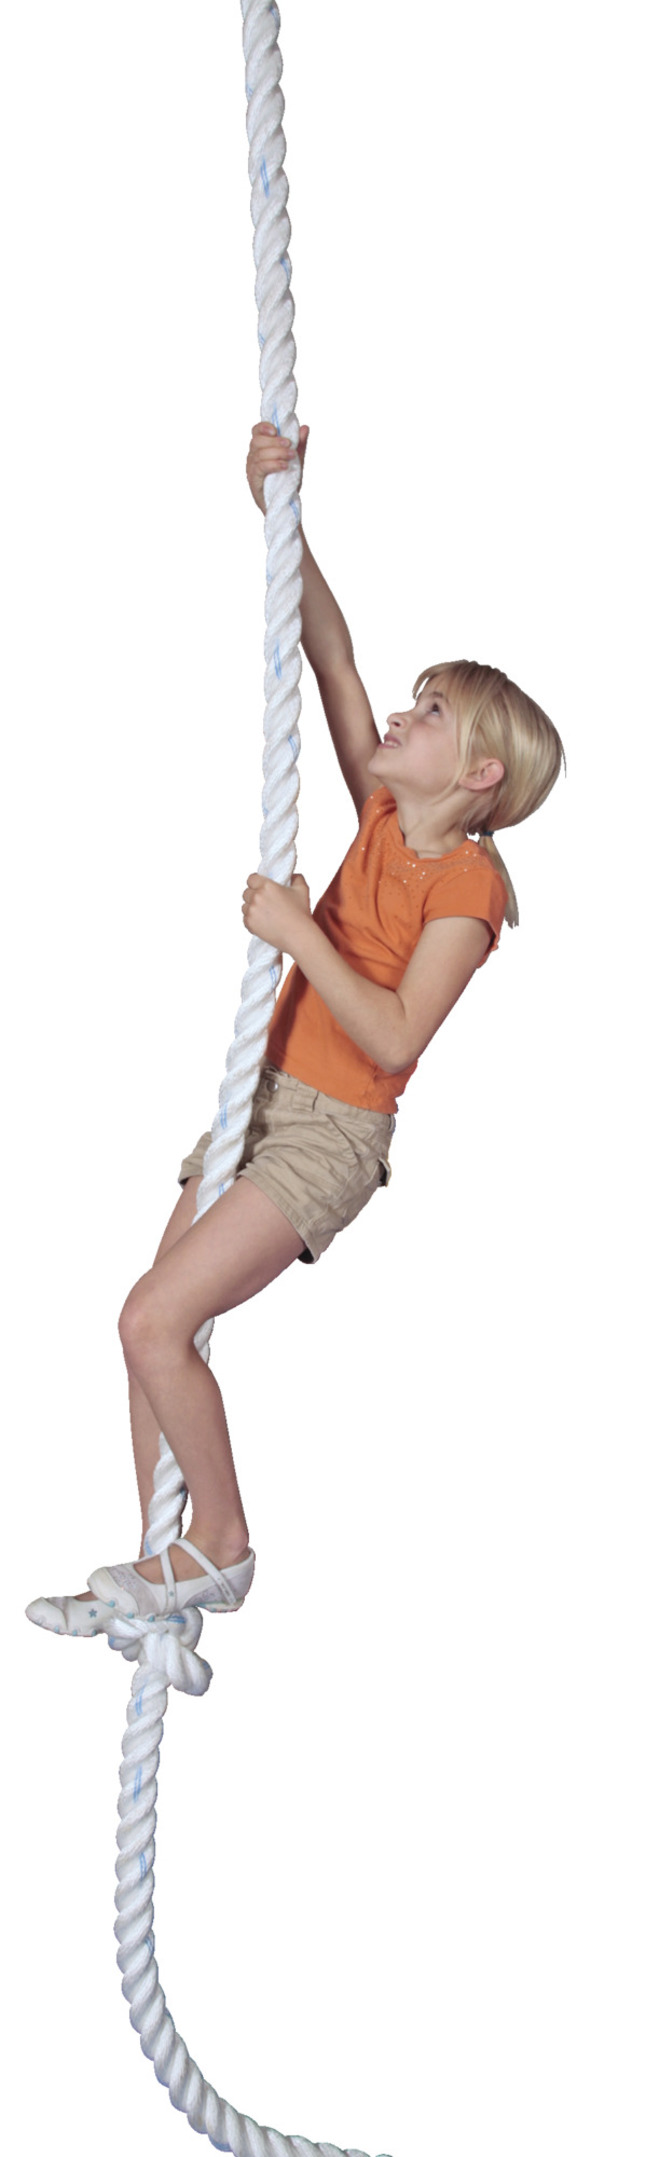 Climbing, Upper Body, Climbing Rope, Climbing Equipment, Item Number 1283634